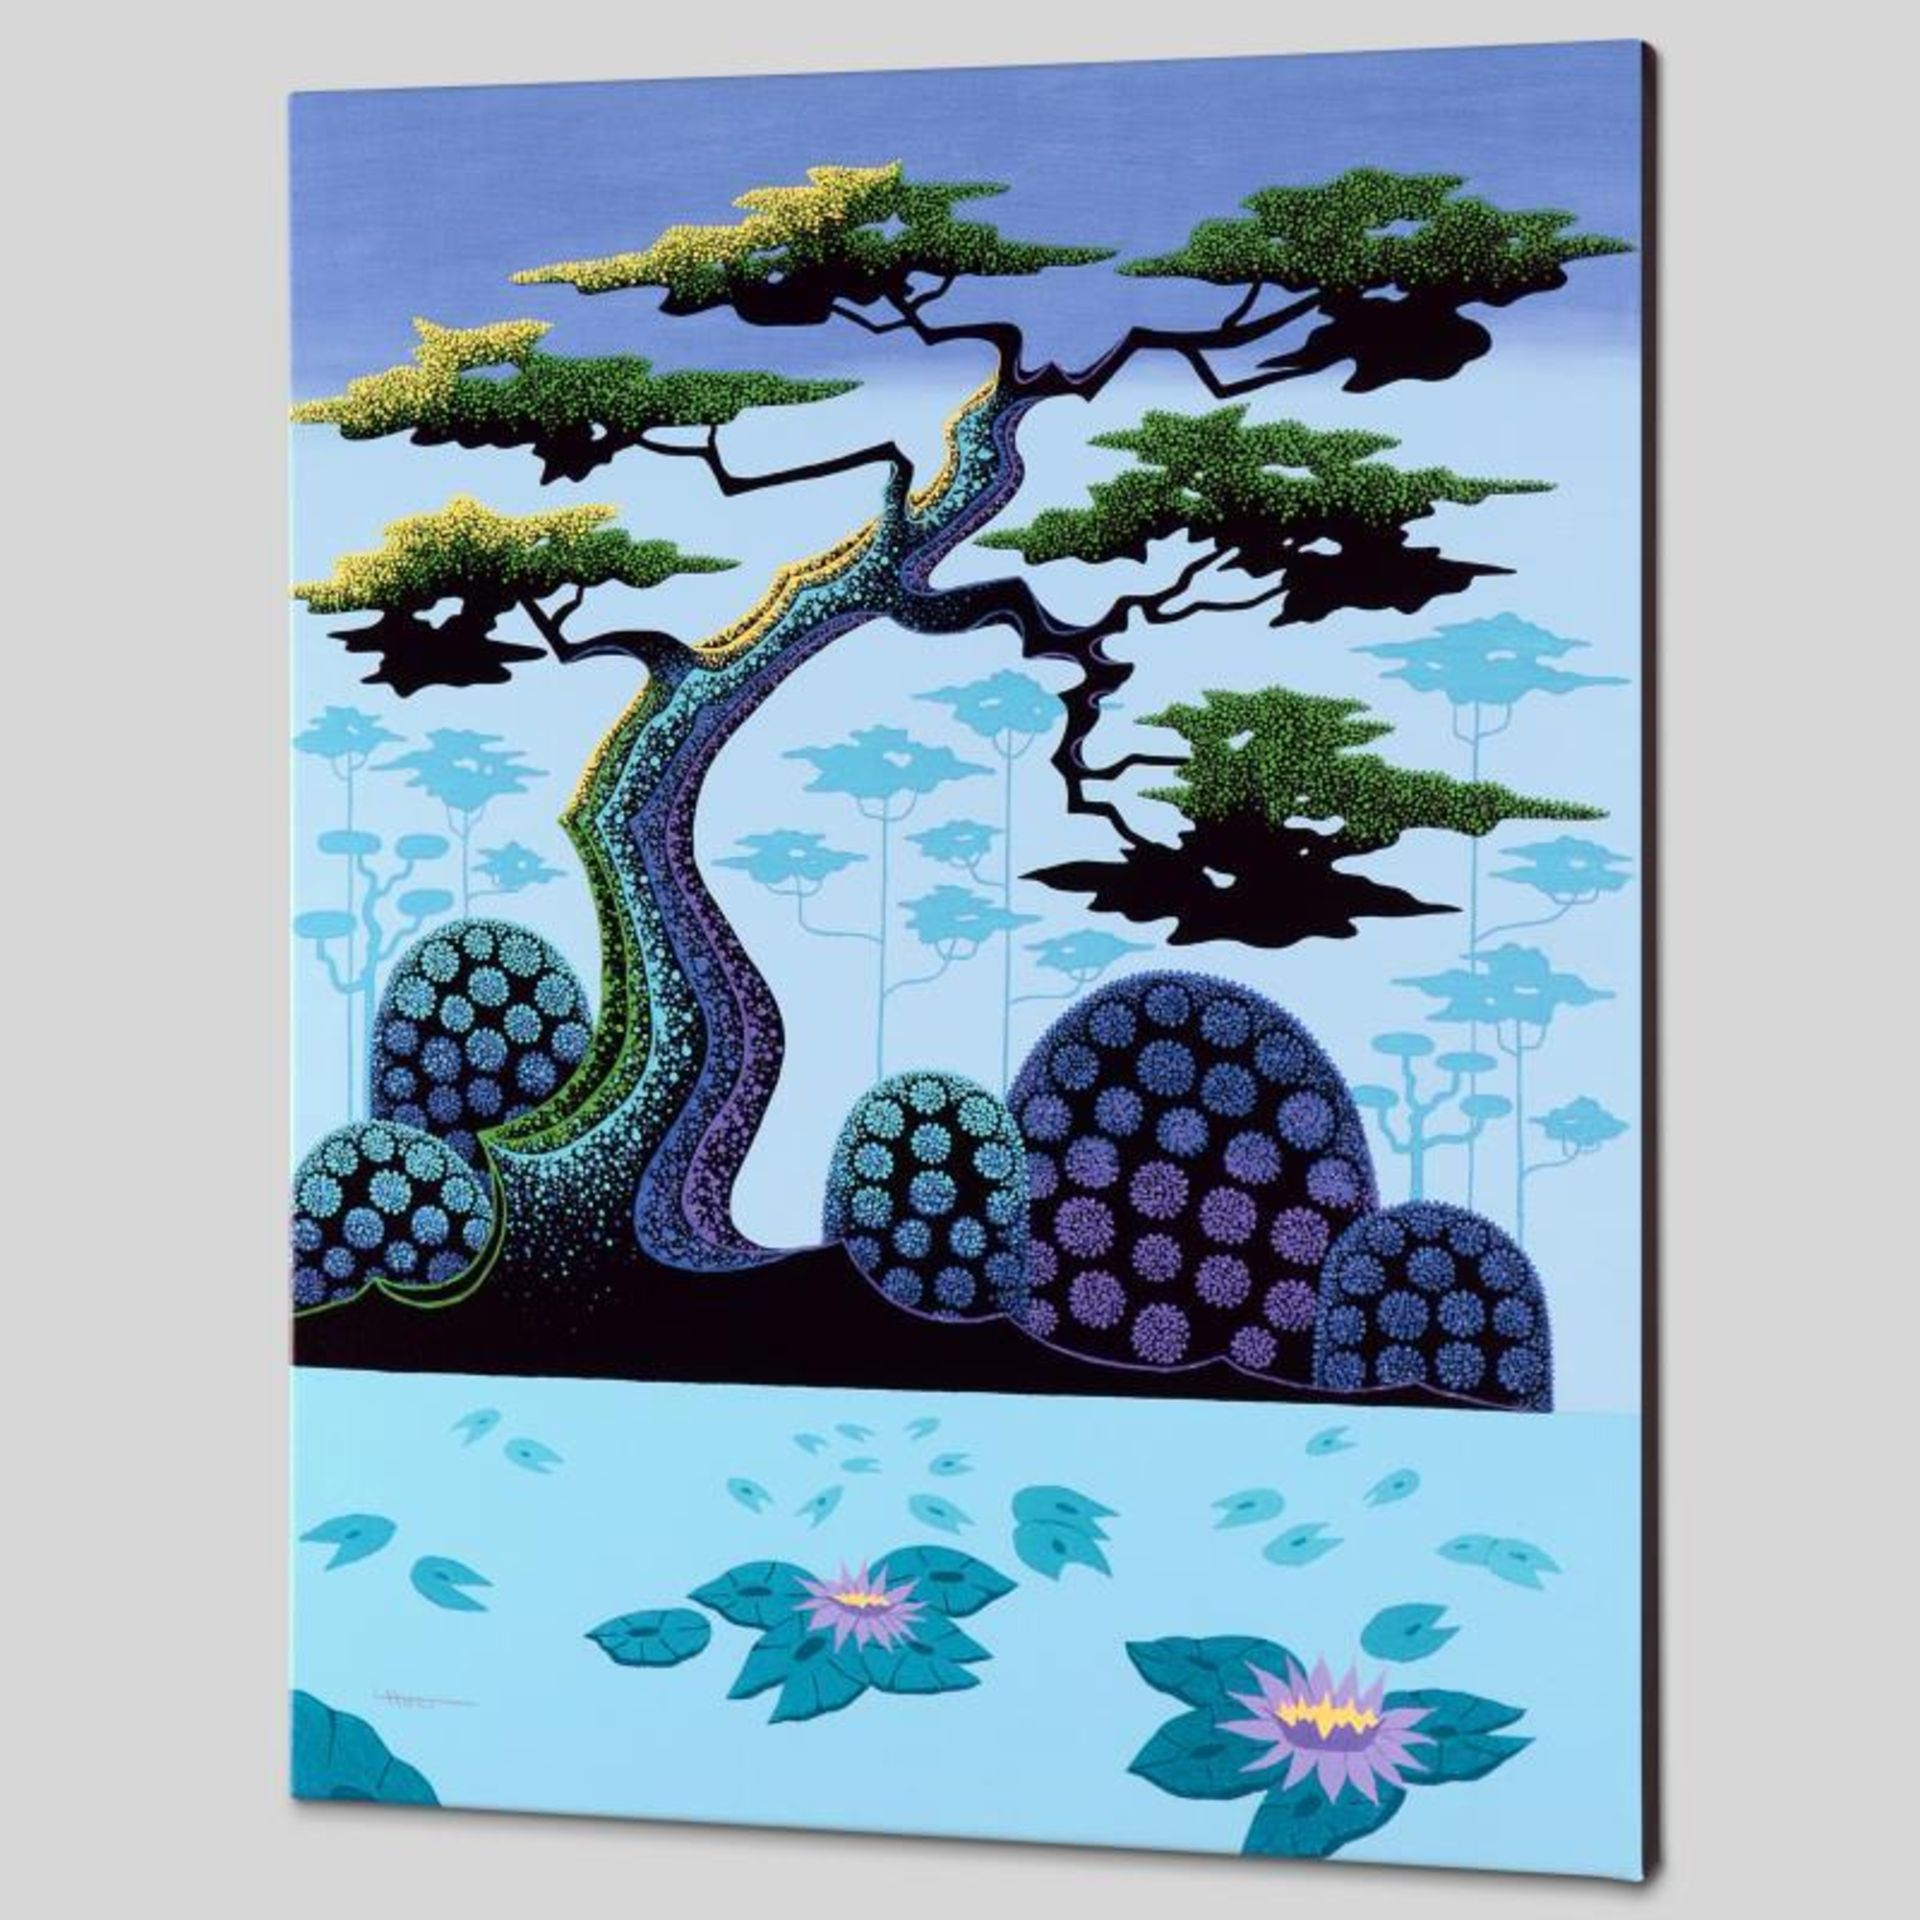 """Lotus by Moonlight"" Limited Edition Giclee on Canvas by Larissa Holt, Numbered - Image 2 of 2"